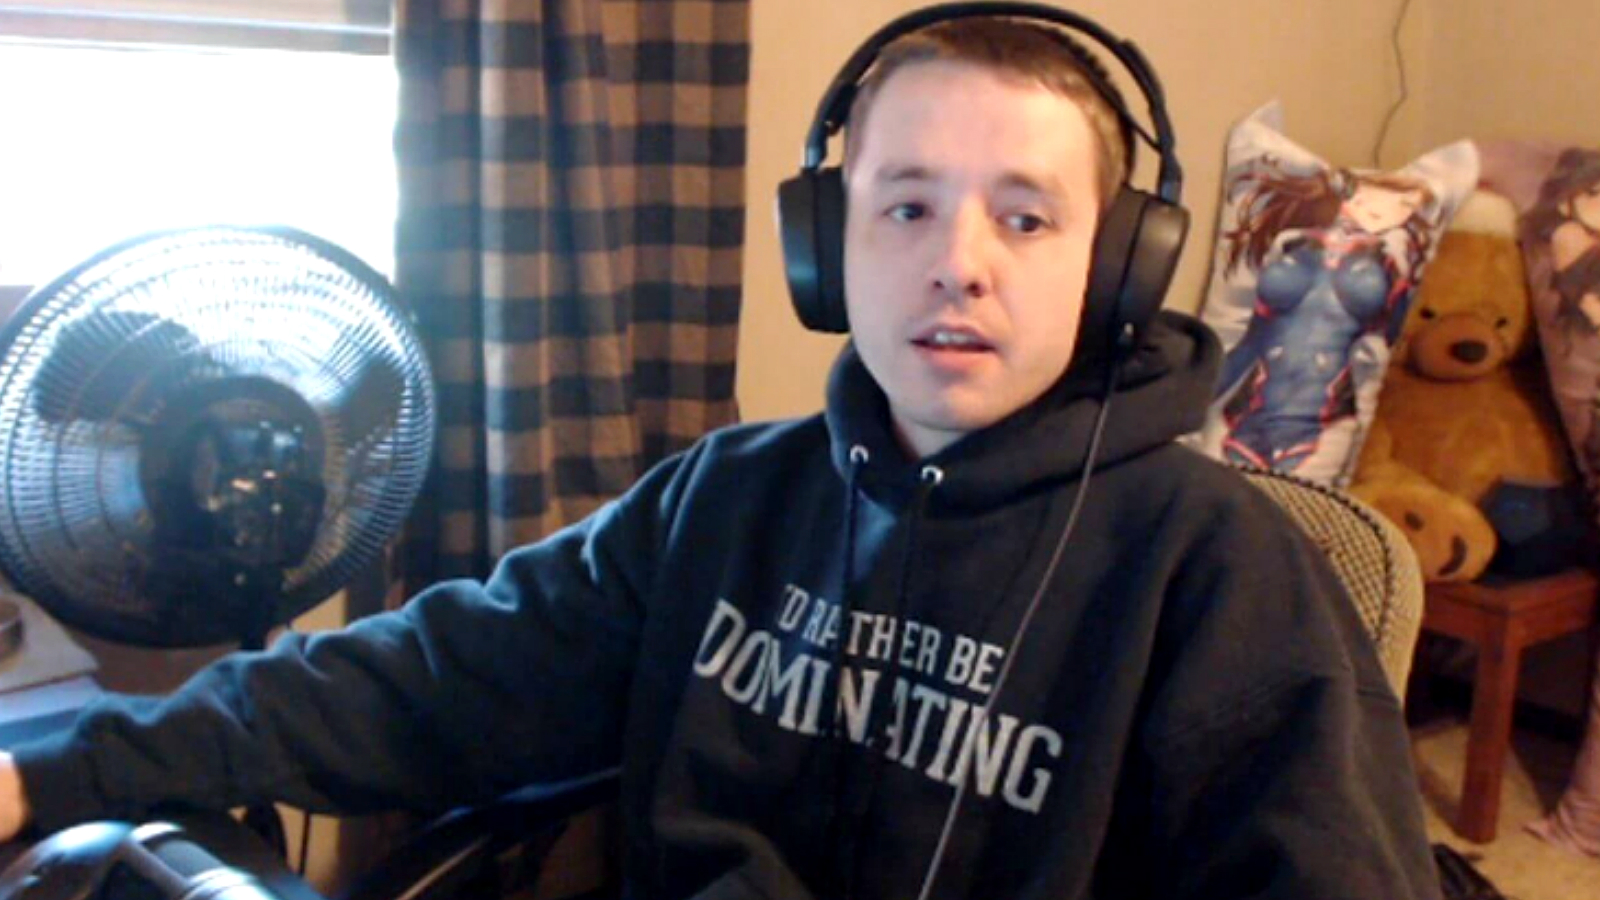 Dellor streaming on Twitch